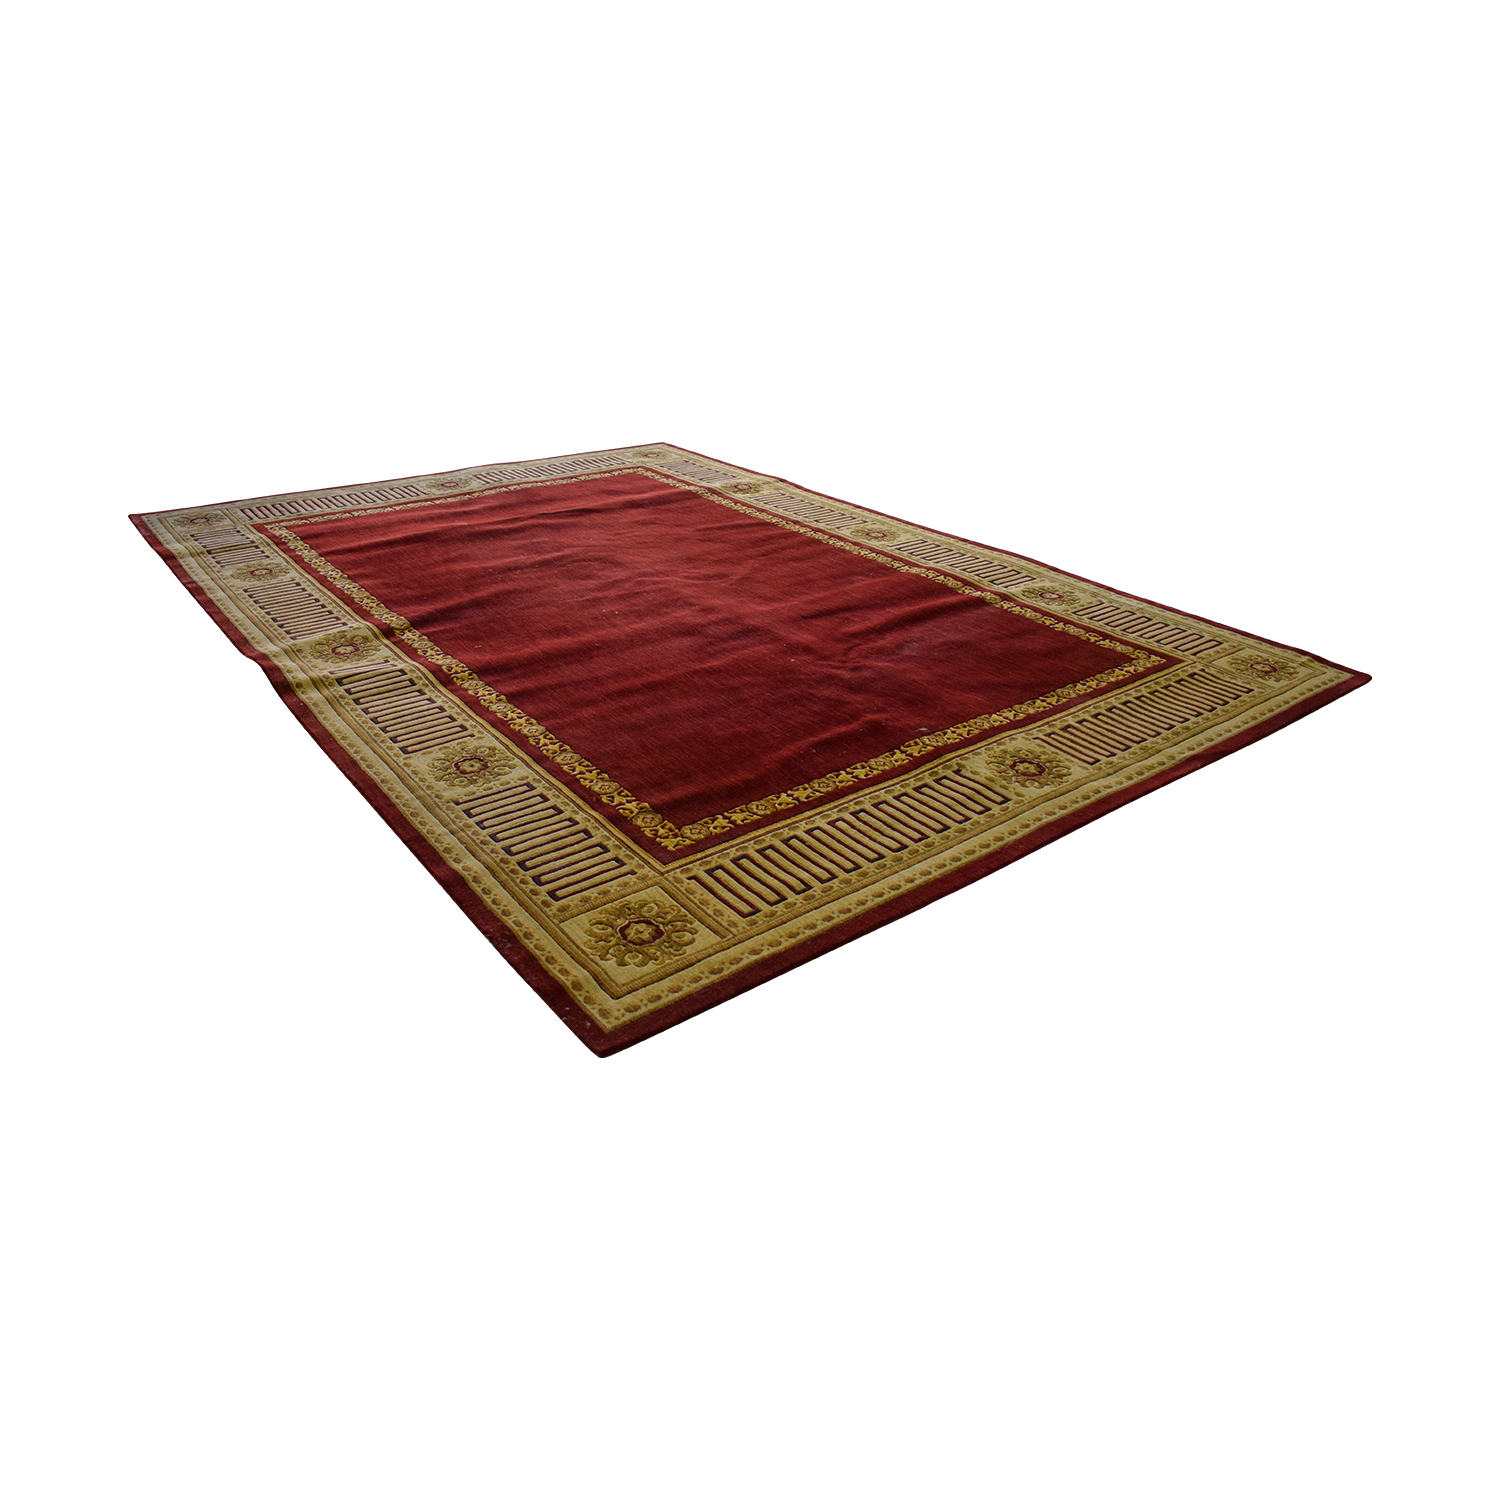 Bloomingdales Bloomingdales Red and Gold Wool Rug second hand